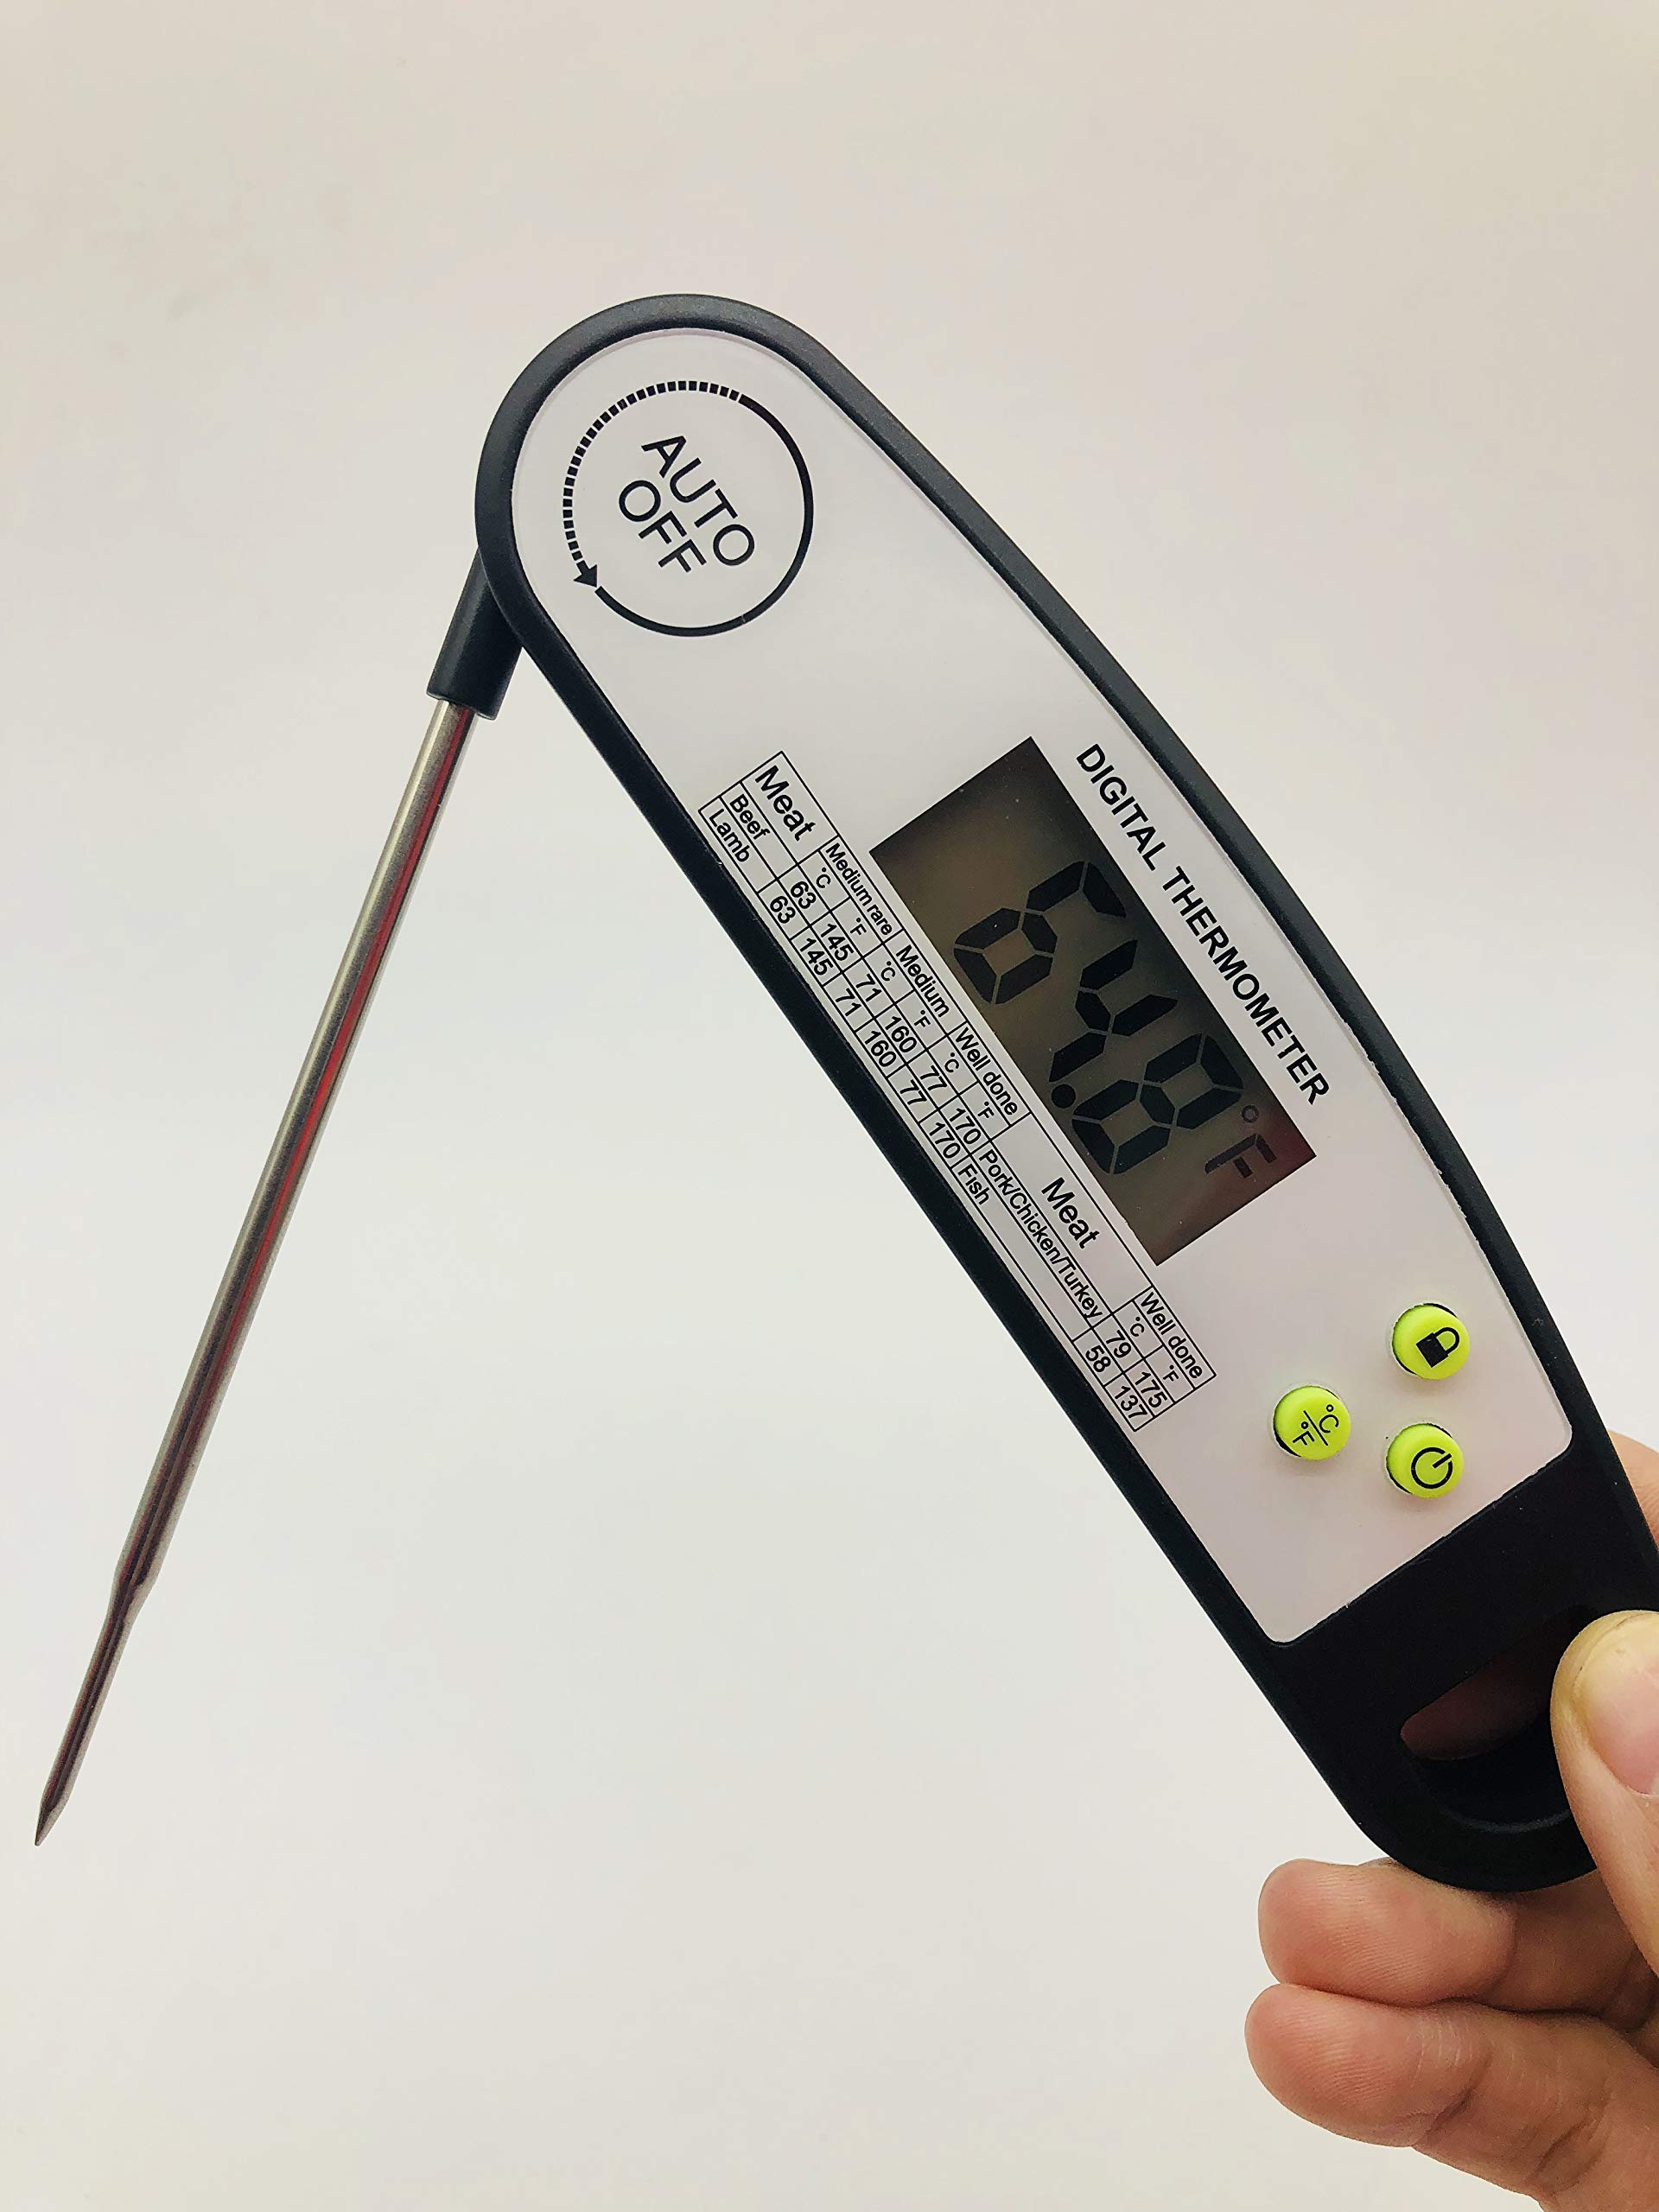 Electronic Waterproof Kitchen Food Thermometer- Fast Read Cooking Thermometer Digital Kitchen Thermometer with Magnet Baking Thermometer for Candy and High Temperature BBQ Frying Food Auto-off (BLACK)